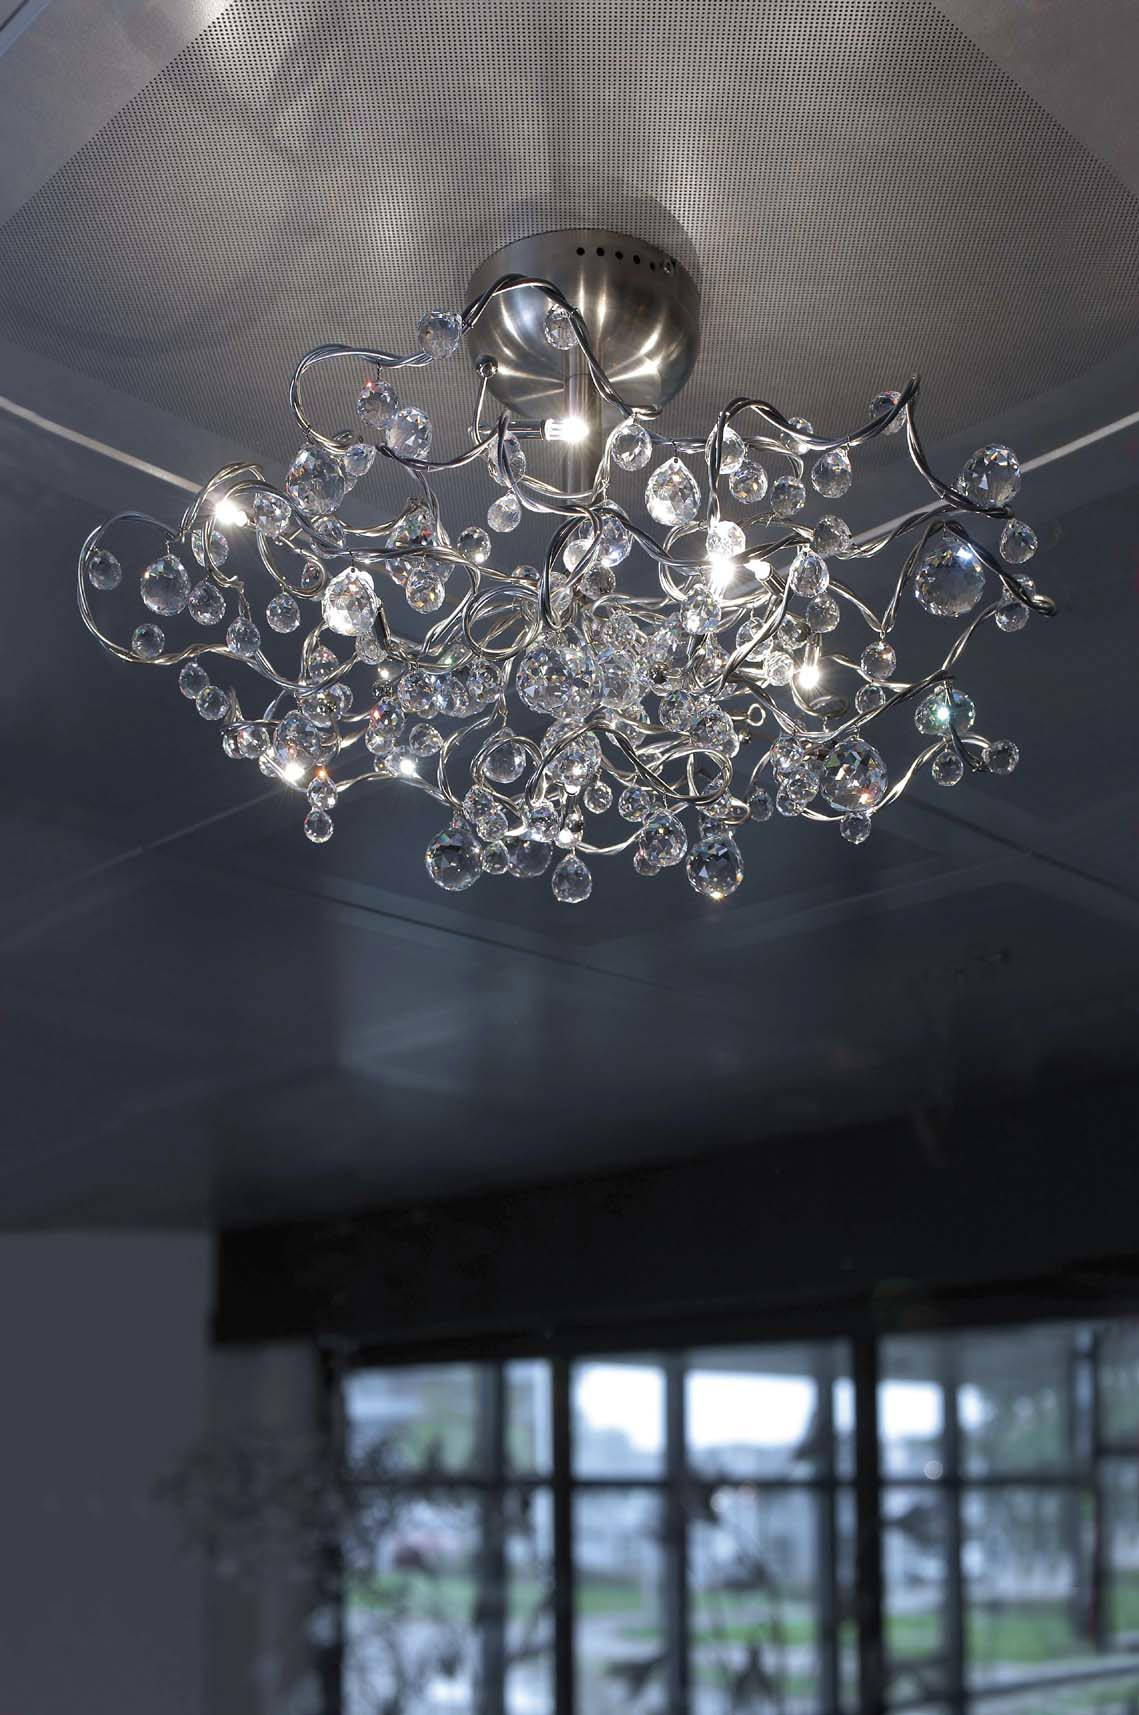 Tiara Diamond 9-light ceiling light with drops in Asfour crystal. Harco Loor.